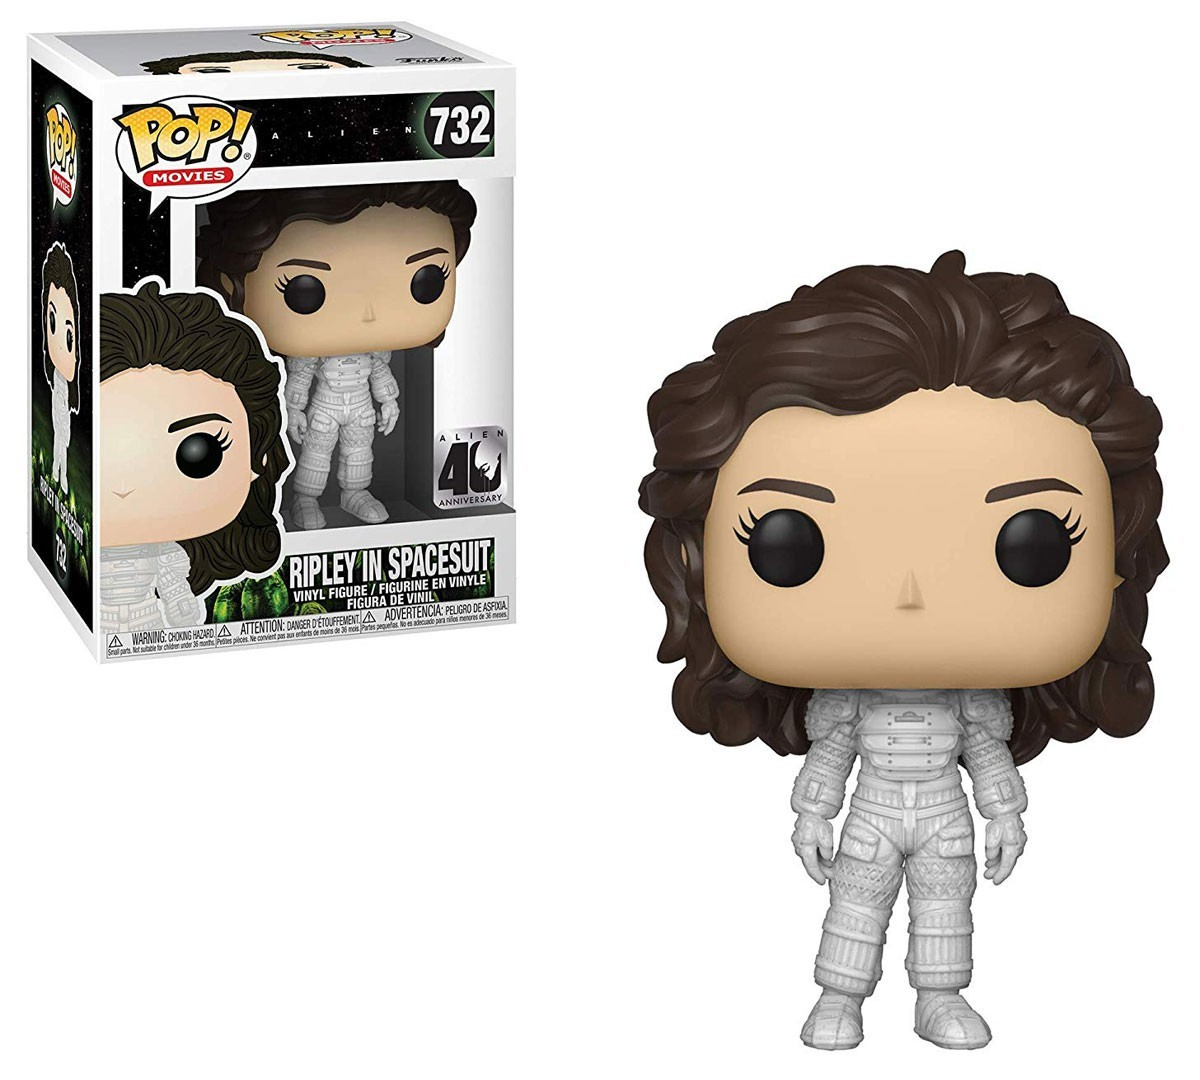 POP! Movies: Alien 40th Anniversary - Ripley in Spacesuit Vinyl Figure #732